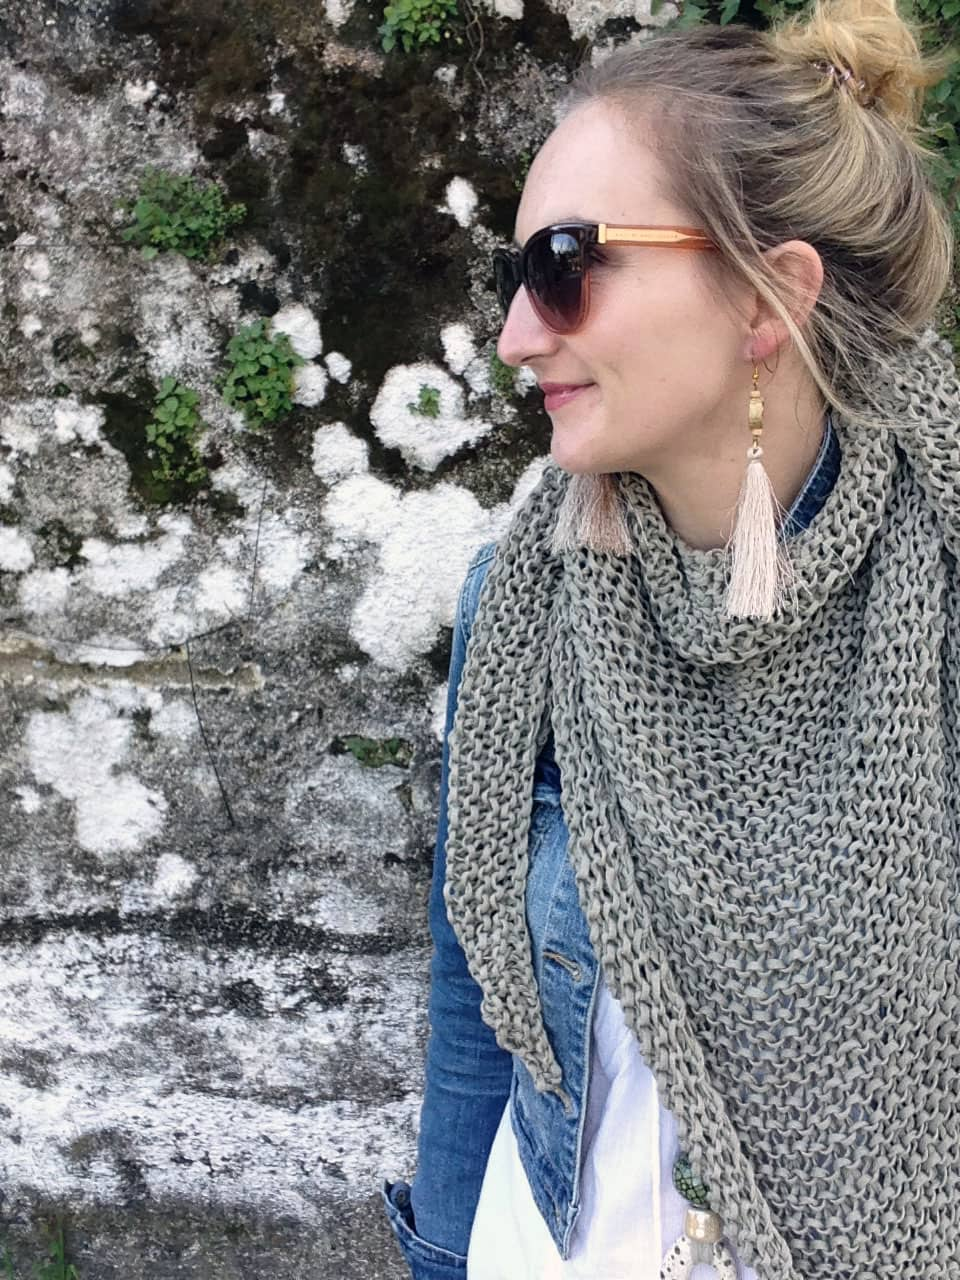 Beginner scarf knitting pattern